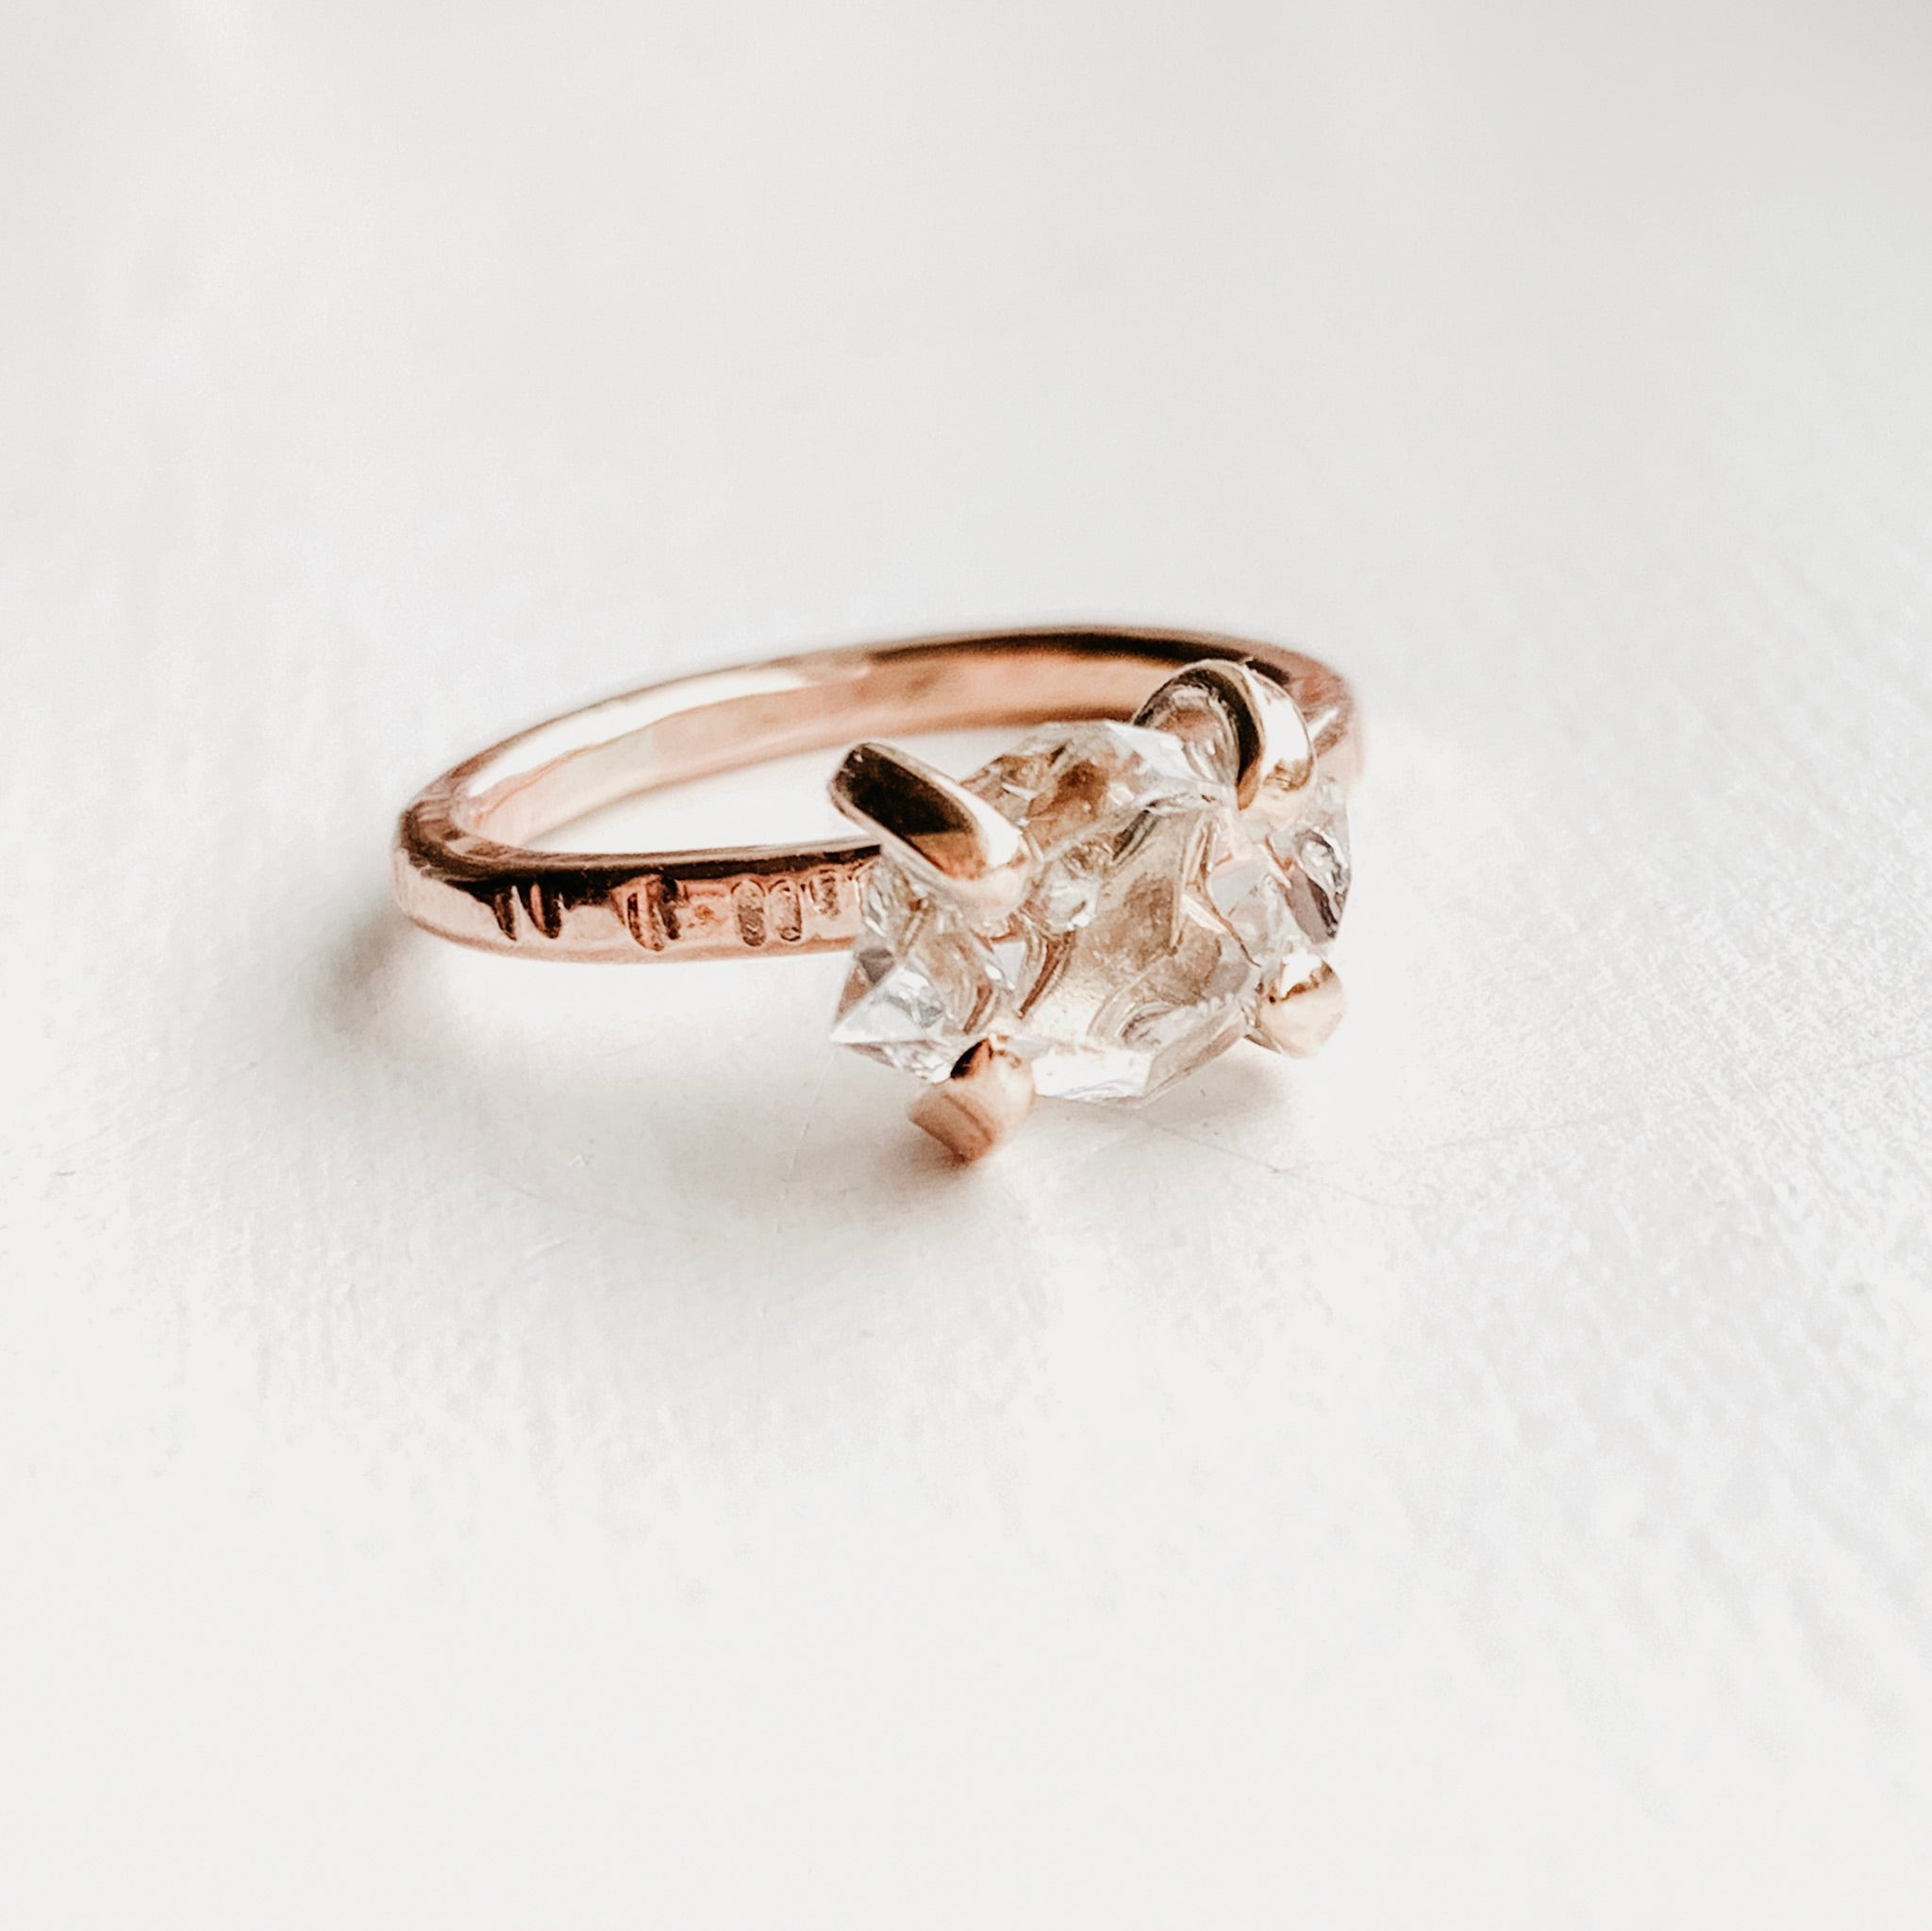 HERKIMER DIAMOND CRYSTAL RING - ROSE GOLD - SIZE 5